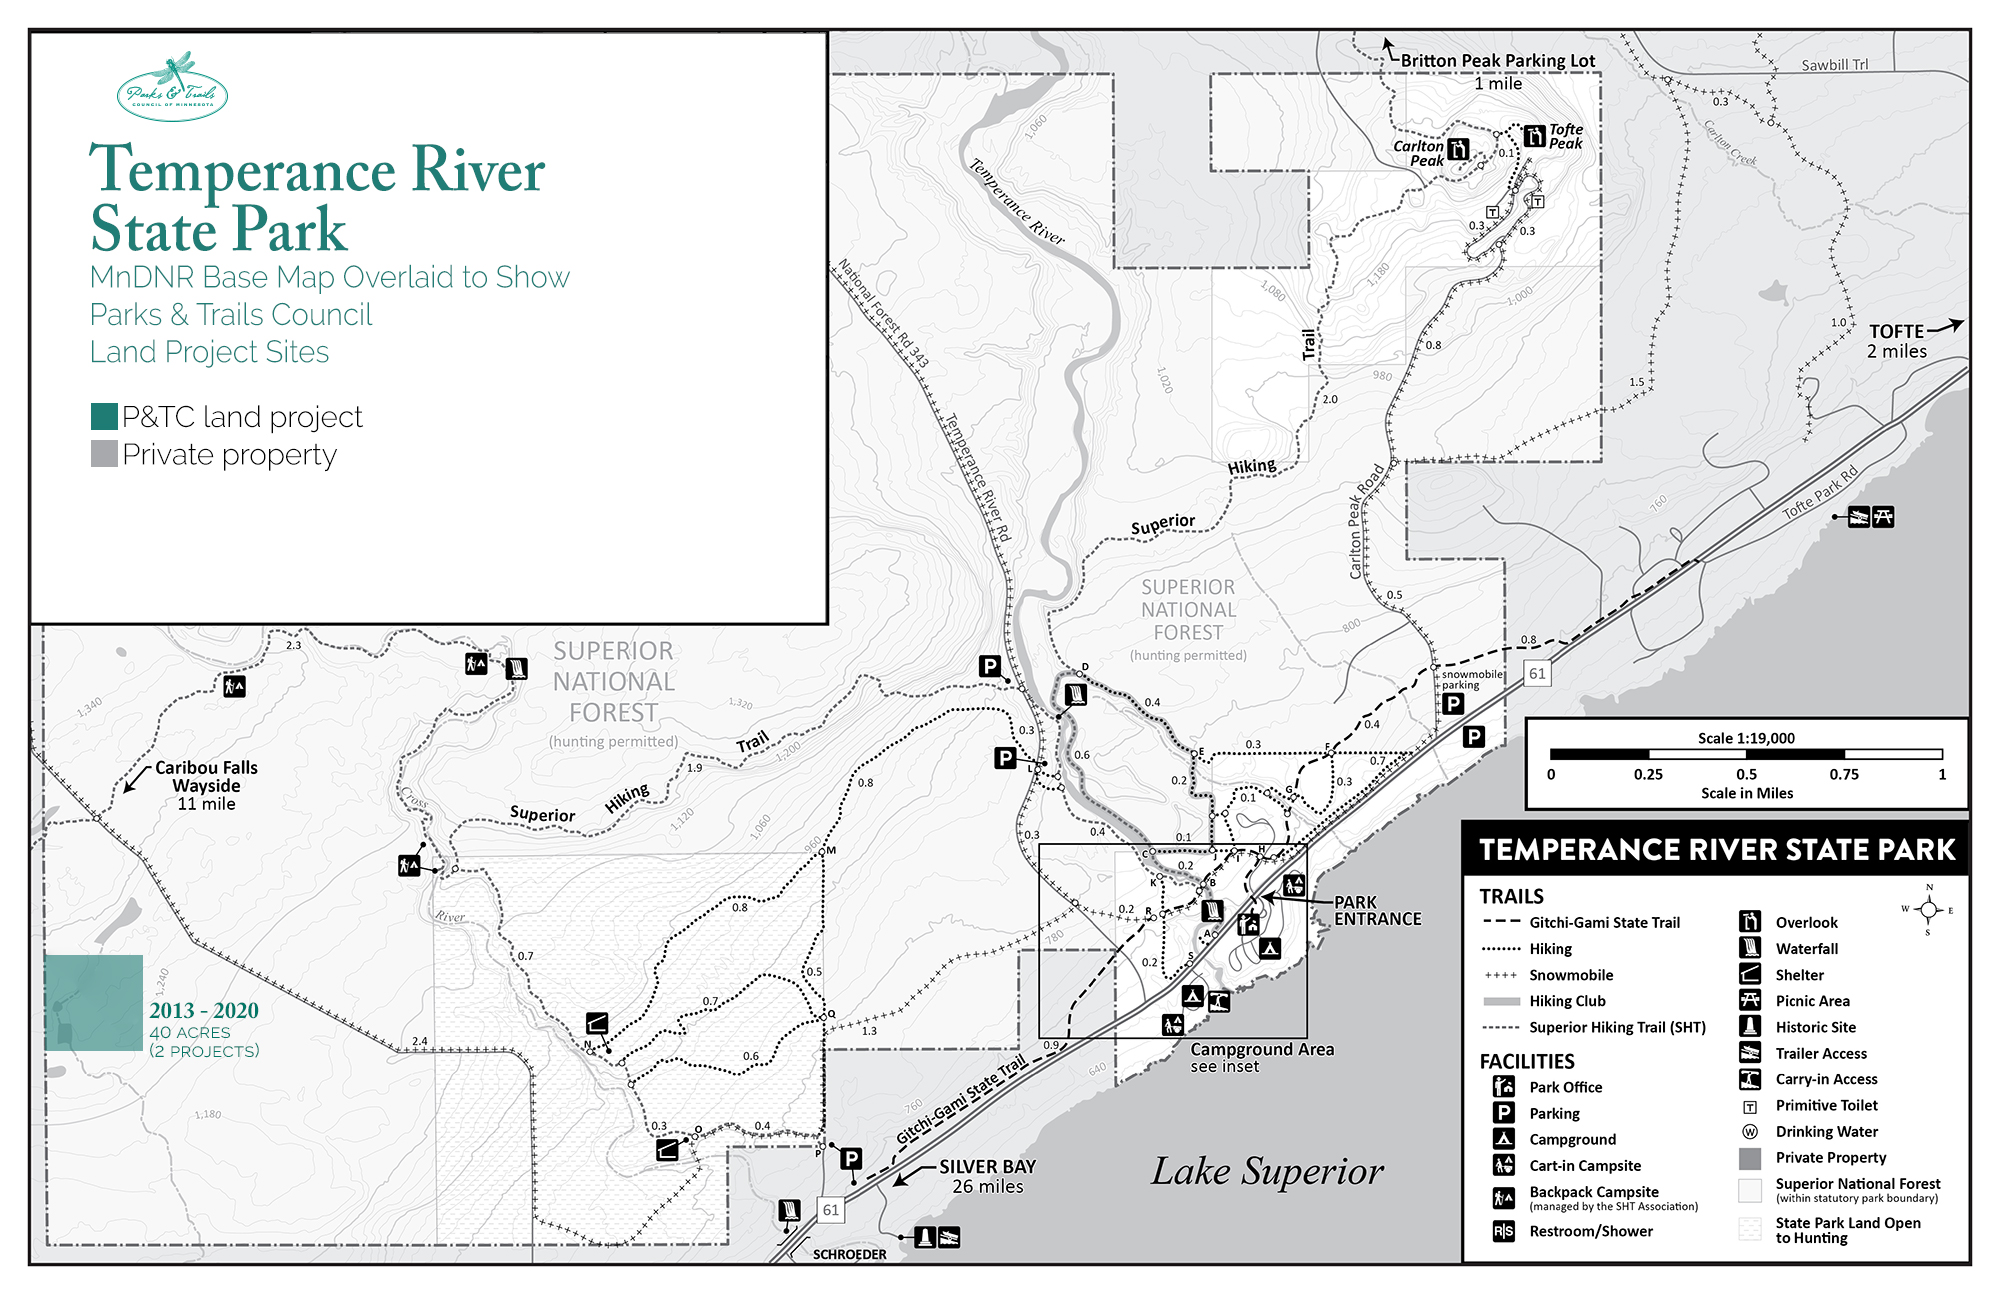 Map of Temperance River State Park